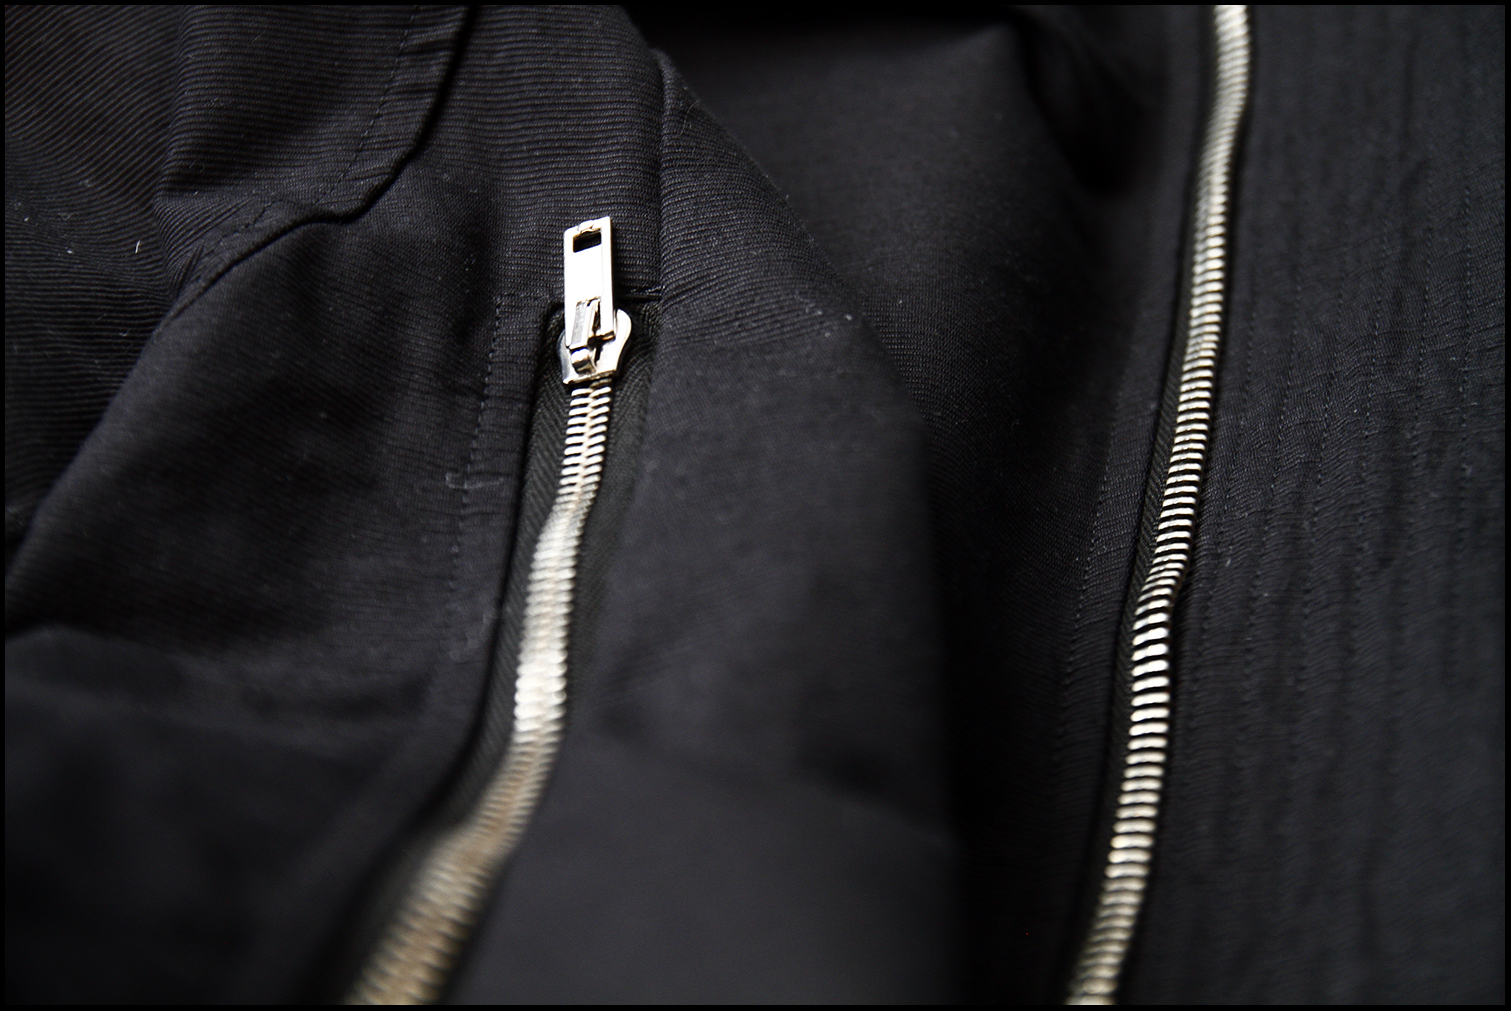 Tuukka13 - Greetings from Brussels - New Rick Owens Jacket, Ann Demeulemeester Neck Pouch and Givenchy - At Pantone Hotel - 3